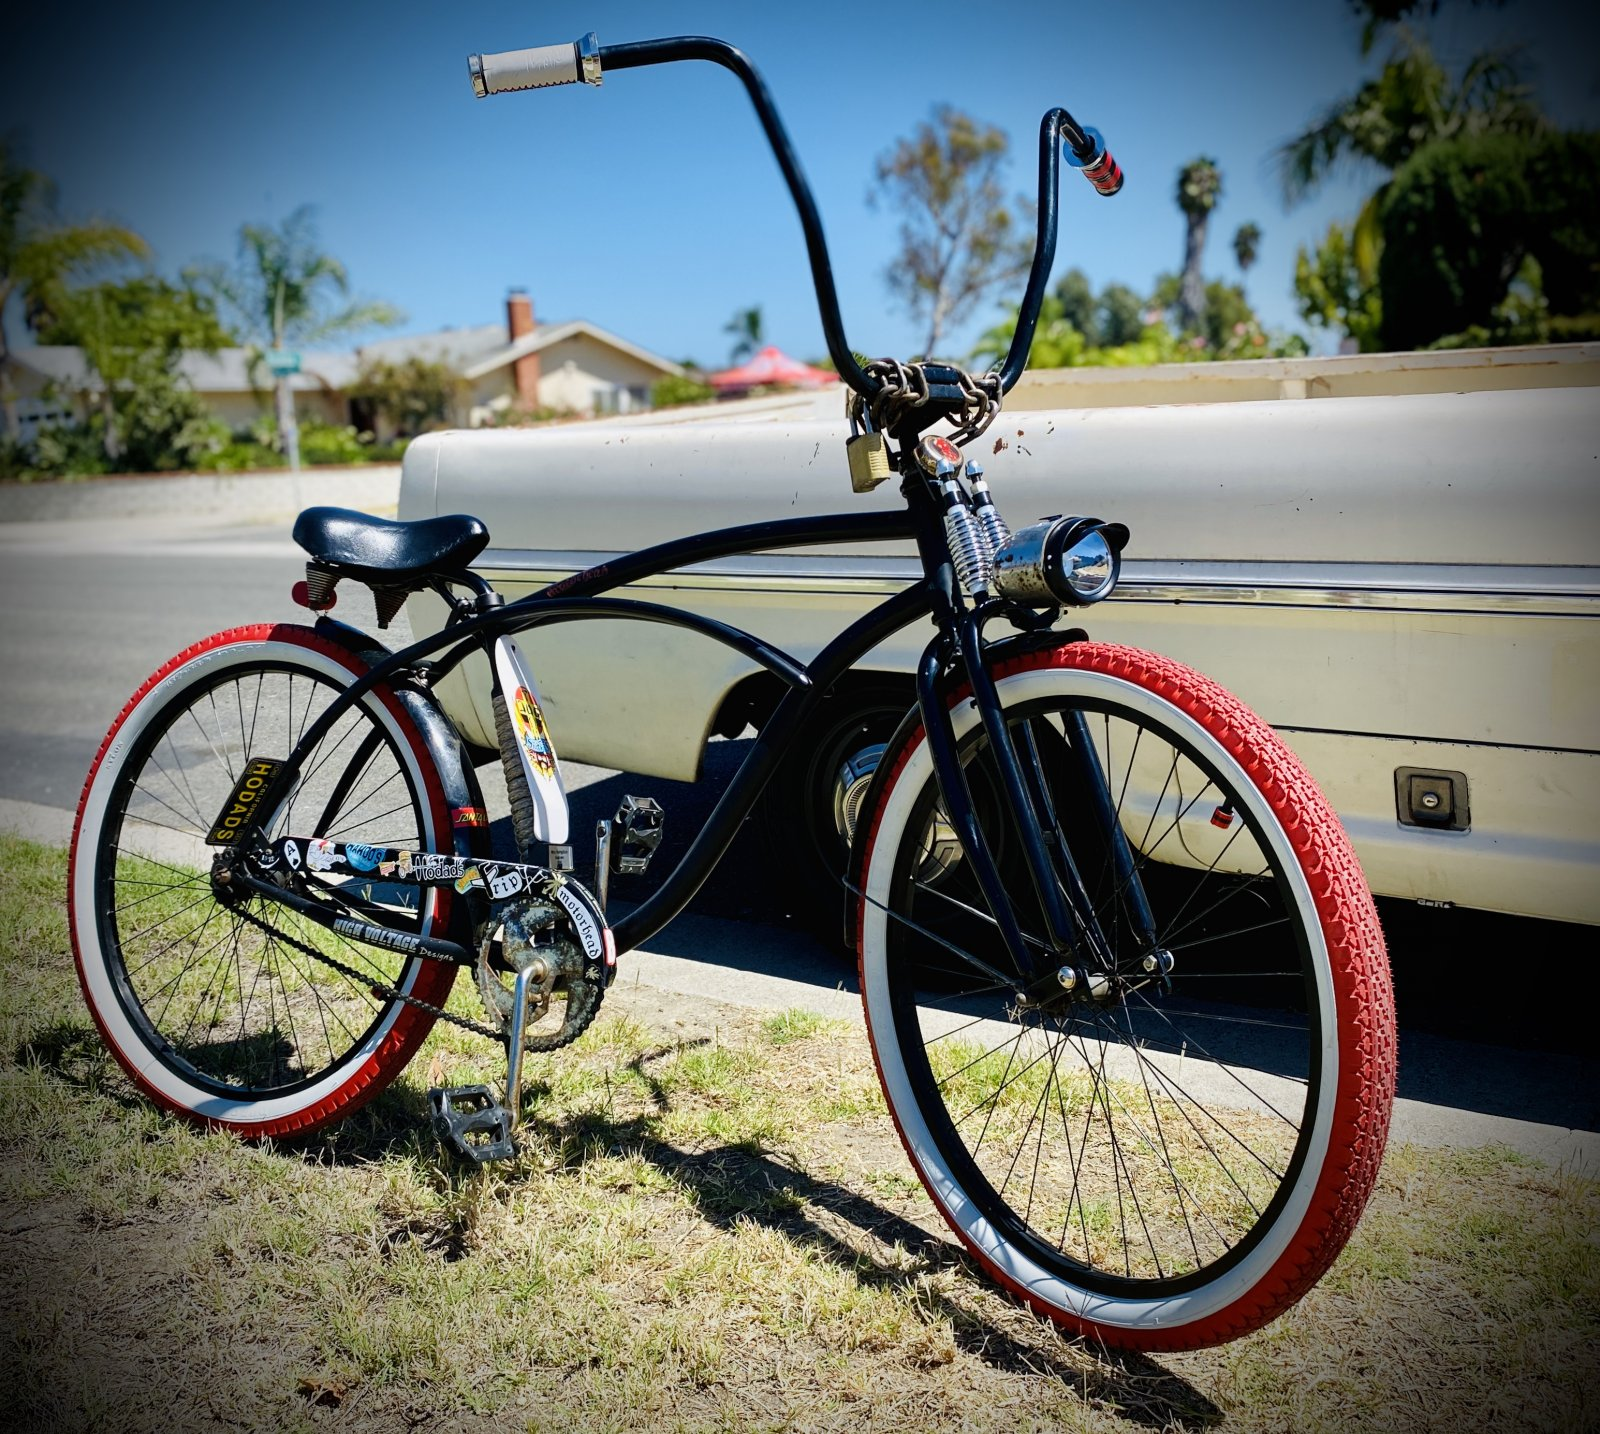 043 32. No Gas Money! ( Who needs gas $$$ anyway) by BeachBucket.jpg